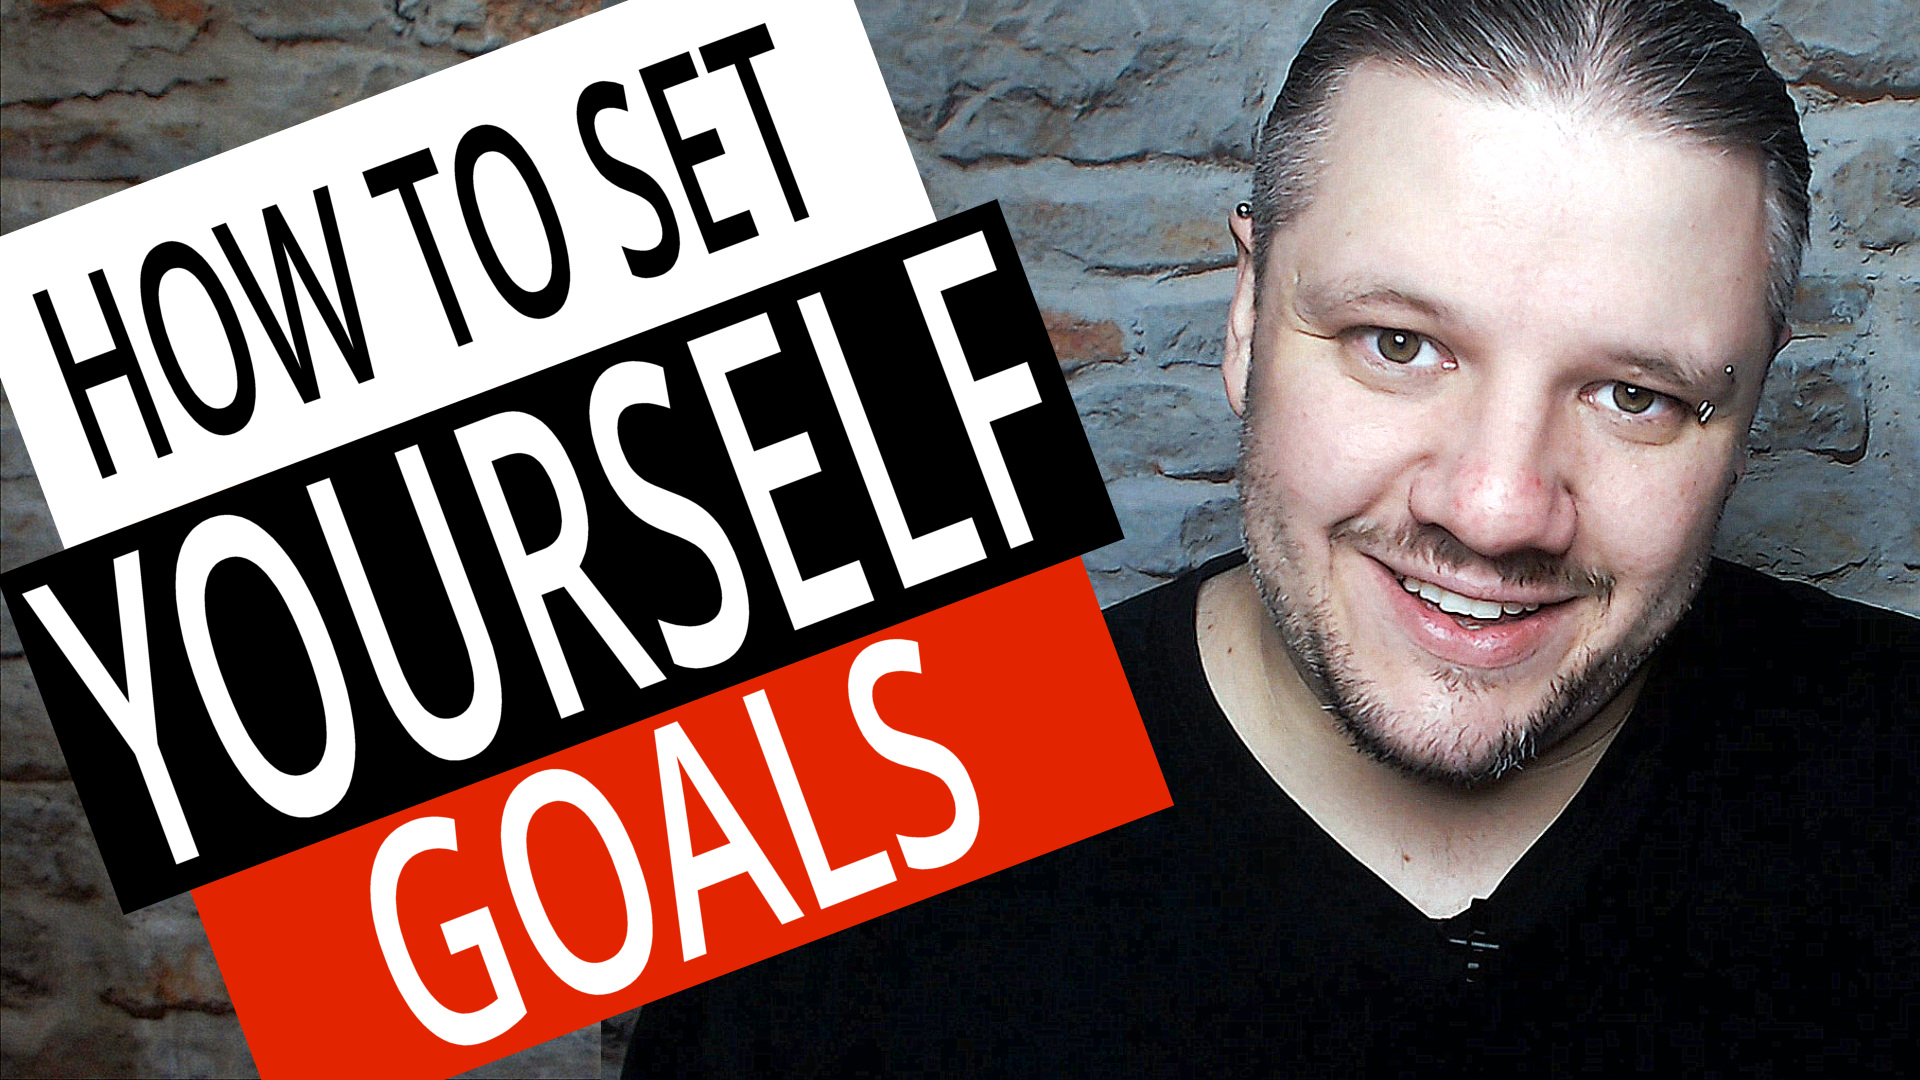 alan spicer,how to set goals,setting goals,goal setting,self improvement,achieving goals,set your goals,how to set yourself goals,set yourself goals,set goals,where do you want to be,where do you want to be in 10 years,Achieve Your Goals,motivation,life goals,life goals motivation,life goal setting,how to set goals for yourself and achieve them,set goals motivation,set goals and achieve them,How To Set Yourself Goals and Achieve Them,achieve goals,goals